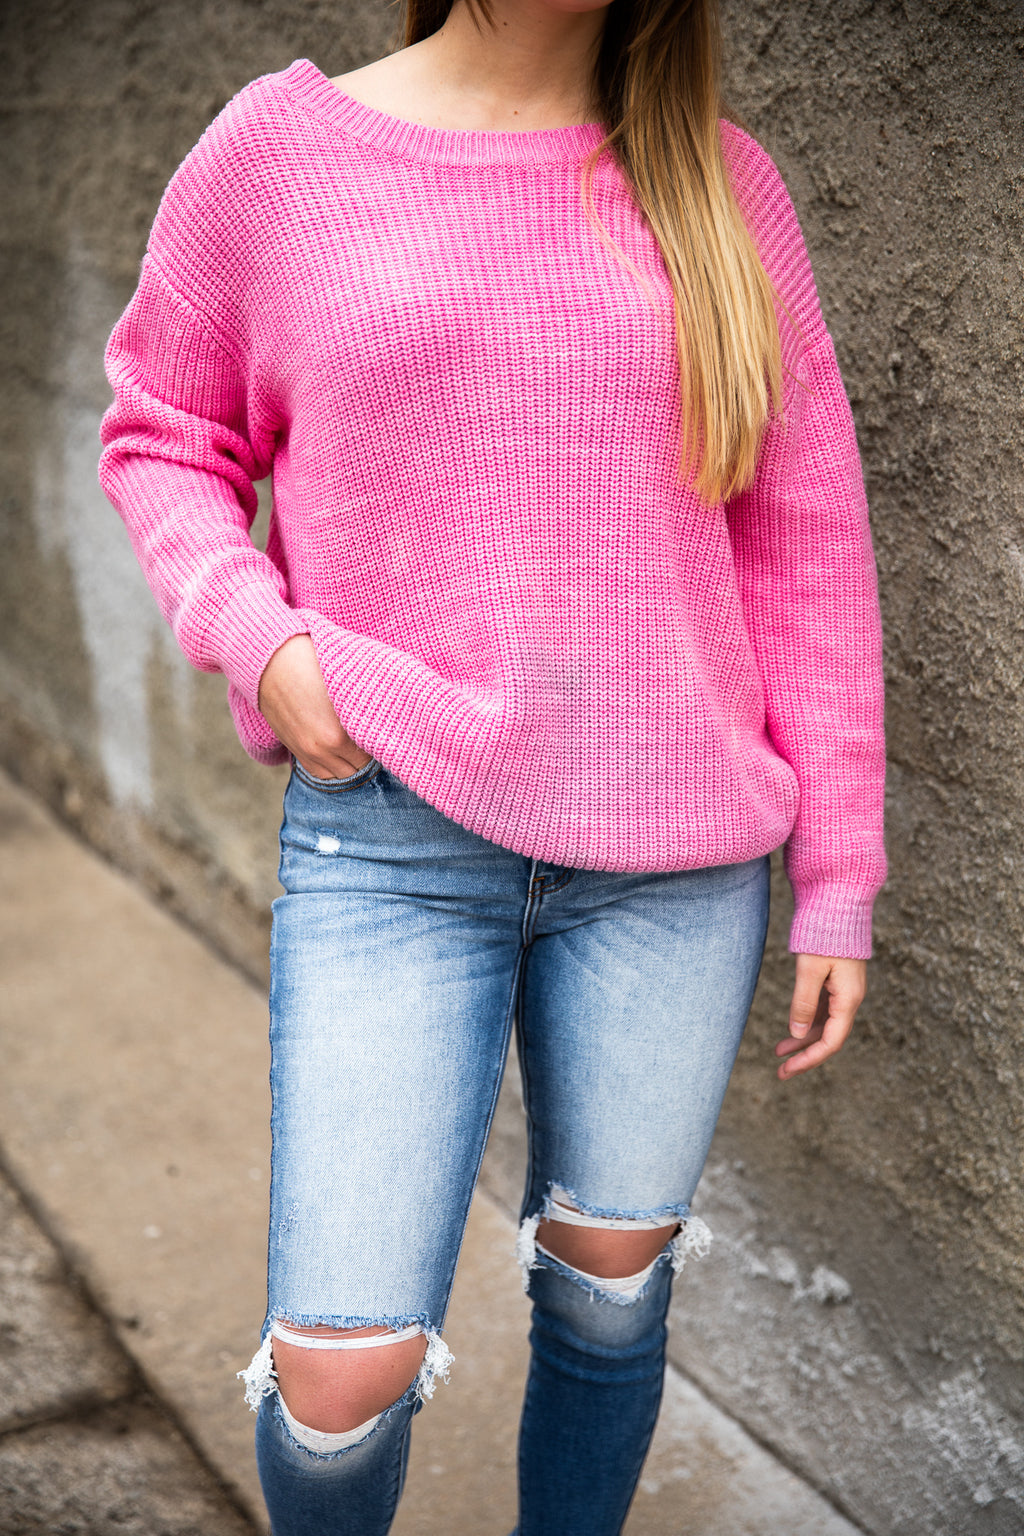 Pink Tie Dye Powderpuff Girl Sweater